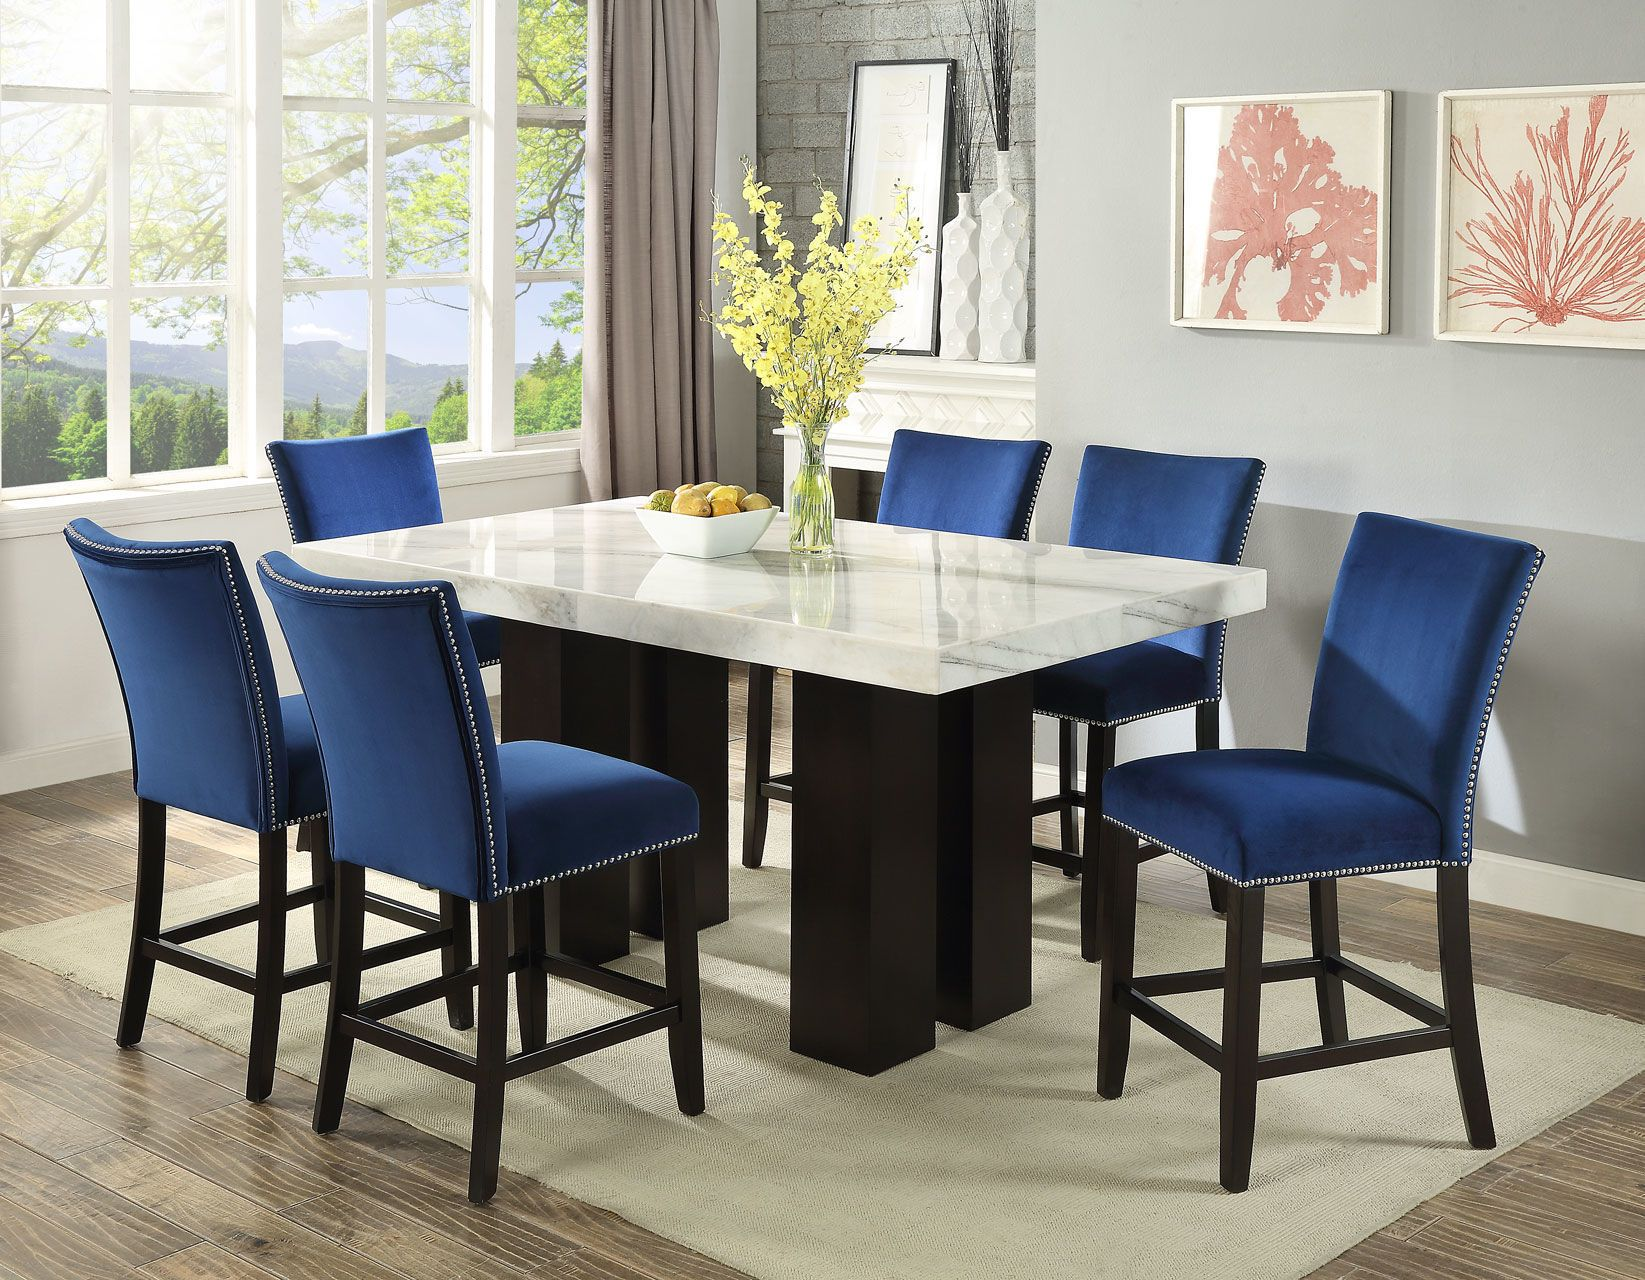 Carmen Square 7pc Counter Height W Blue Stool Counter Height Dining Sets Dining Table Marble Marble Table